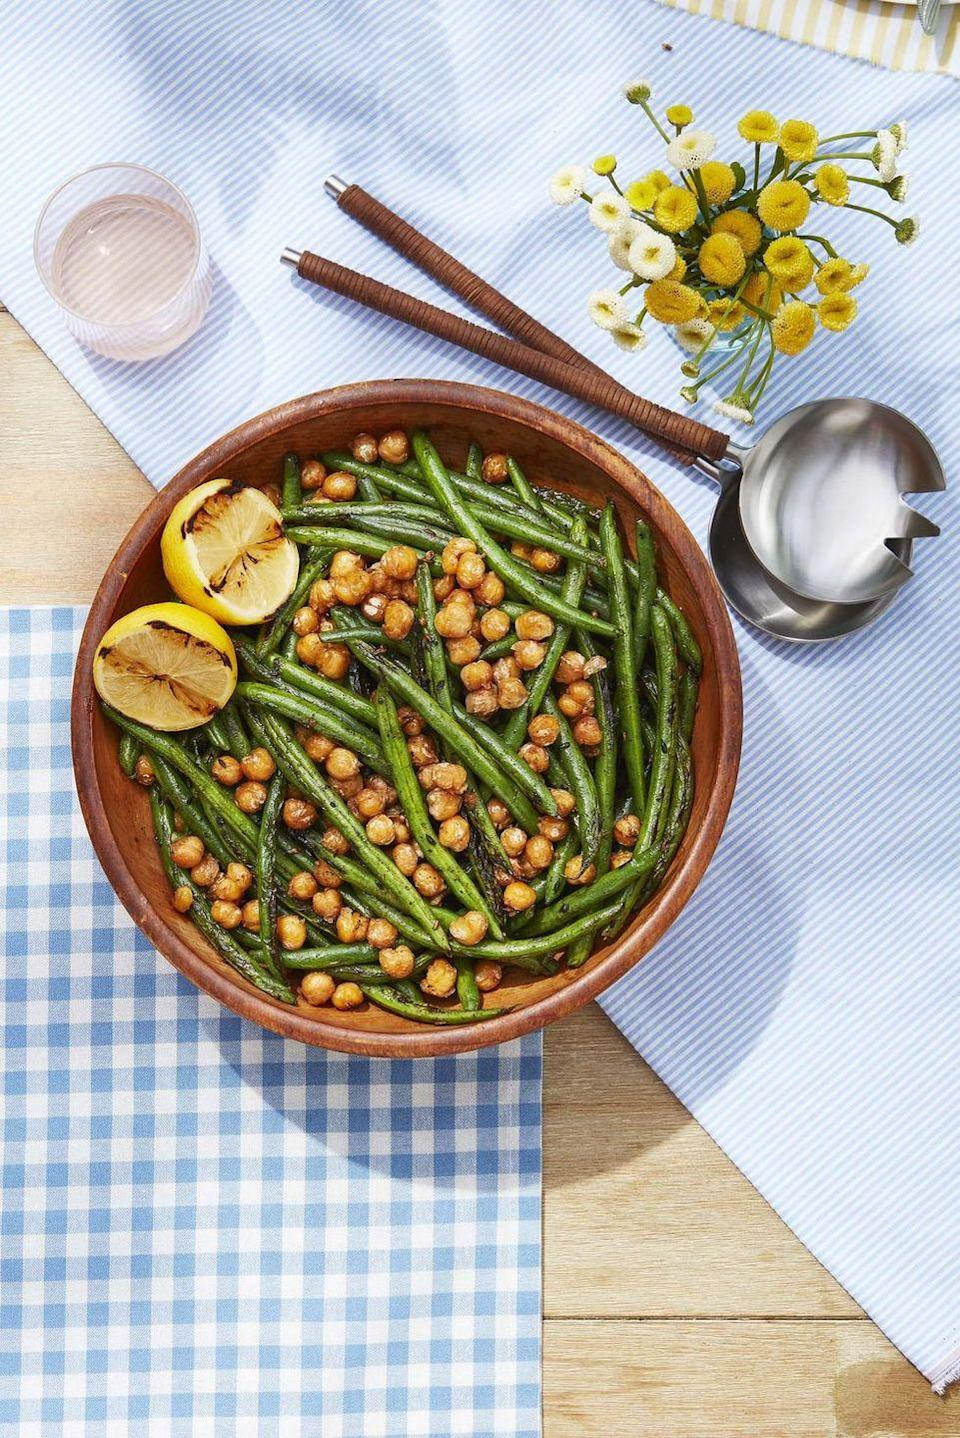 """<p>Whether they're cooked over an open fire or on your kitchen stove, these crispy green beans and chickpeas have just a hint of cumin and will have guests fighting over seconds.<a href=""""https://www.countryliving.com/food-drinks/a32353817/green-beans-with-crispy-chickpeas/"""" rel=""""nofollow noopener"""" target=""""_blank"""" data-ylk=""""slk:"""" class=""""link rapid-noclick-resp""""><br></a></p><p><strong><a href=""""https://www.countryliving.com/food-drinks/a32353817/green-beans-with-crispy-chickpeas/"""" rel=""""nofollow noopener"""" target=""""_blank"""" data-ylk=""""slk:Get the recipe"""" class=""""link rapid-noclick-resp"""">Get the recipe</a>.</strong></p><p><a class=""""link rapid-noclick-resp"""" href=""""https://www.amazon.com/Lipper-International-Bamboo-Wood-Salad/dp/B001GS8NWM/ref=sr_1_14?tag=syn-yahoo-20&ascsubtag=%5Bartid%7C10050.g.3290%5Bsrc%7Cyahoo-us"""" rel=""""nofollow noopener"""" target=""""_blank"""" data-ylk=""""slk:SHOP SALAD BOWLS"""">SHOP SALAD BOWLS</a></p>"""